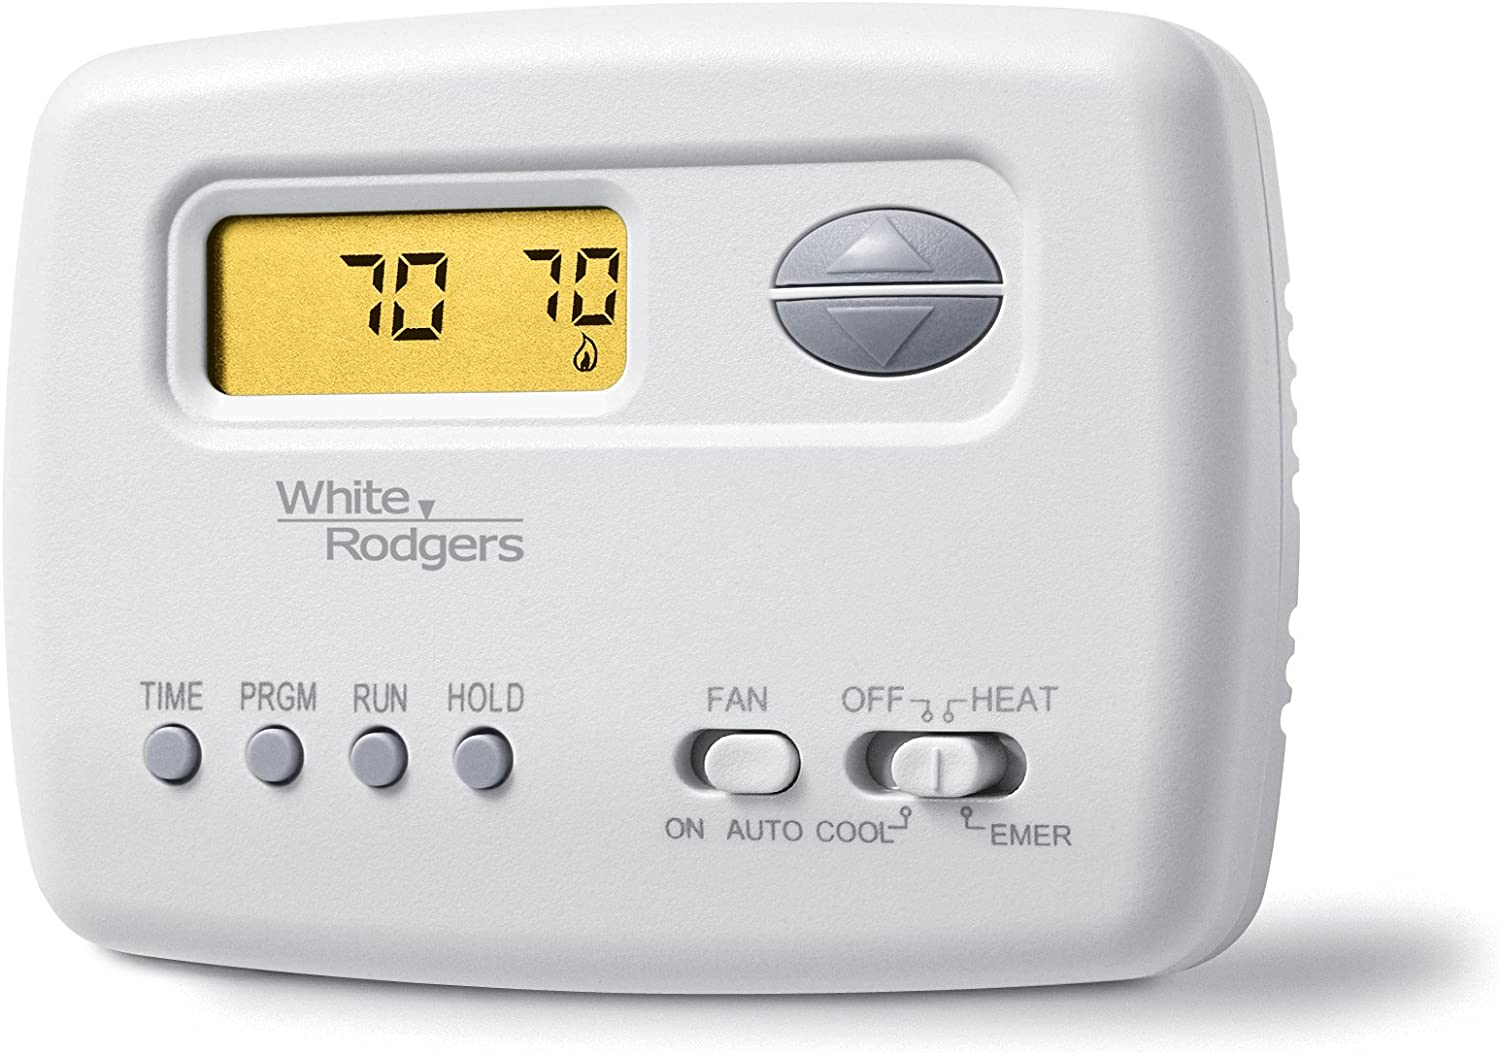 B000CAQKY8 Emerson 1F72-151 5-2 Day Programmable Thermostat for Heat Pump Systems 71I9OqCNxwL